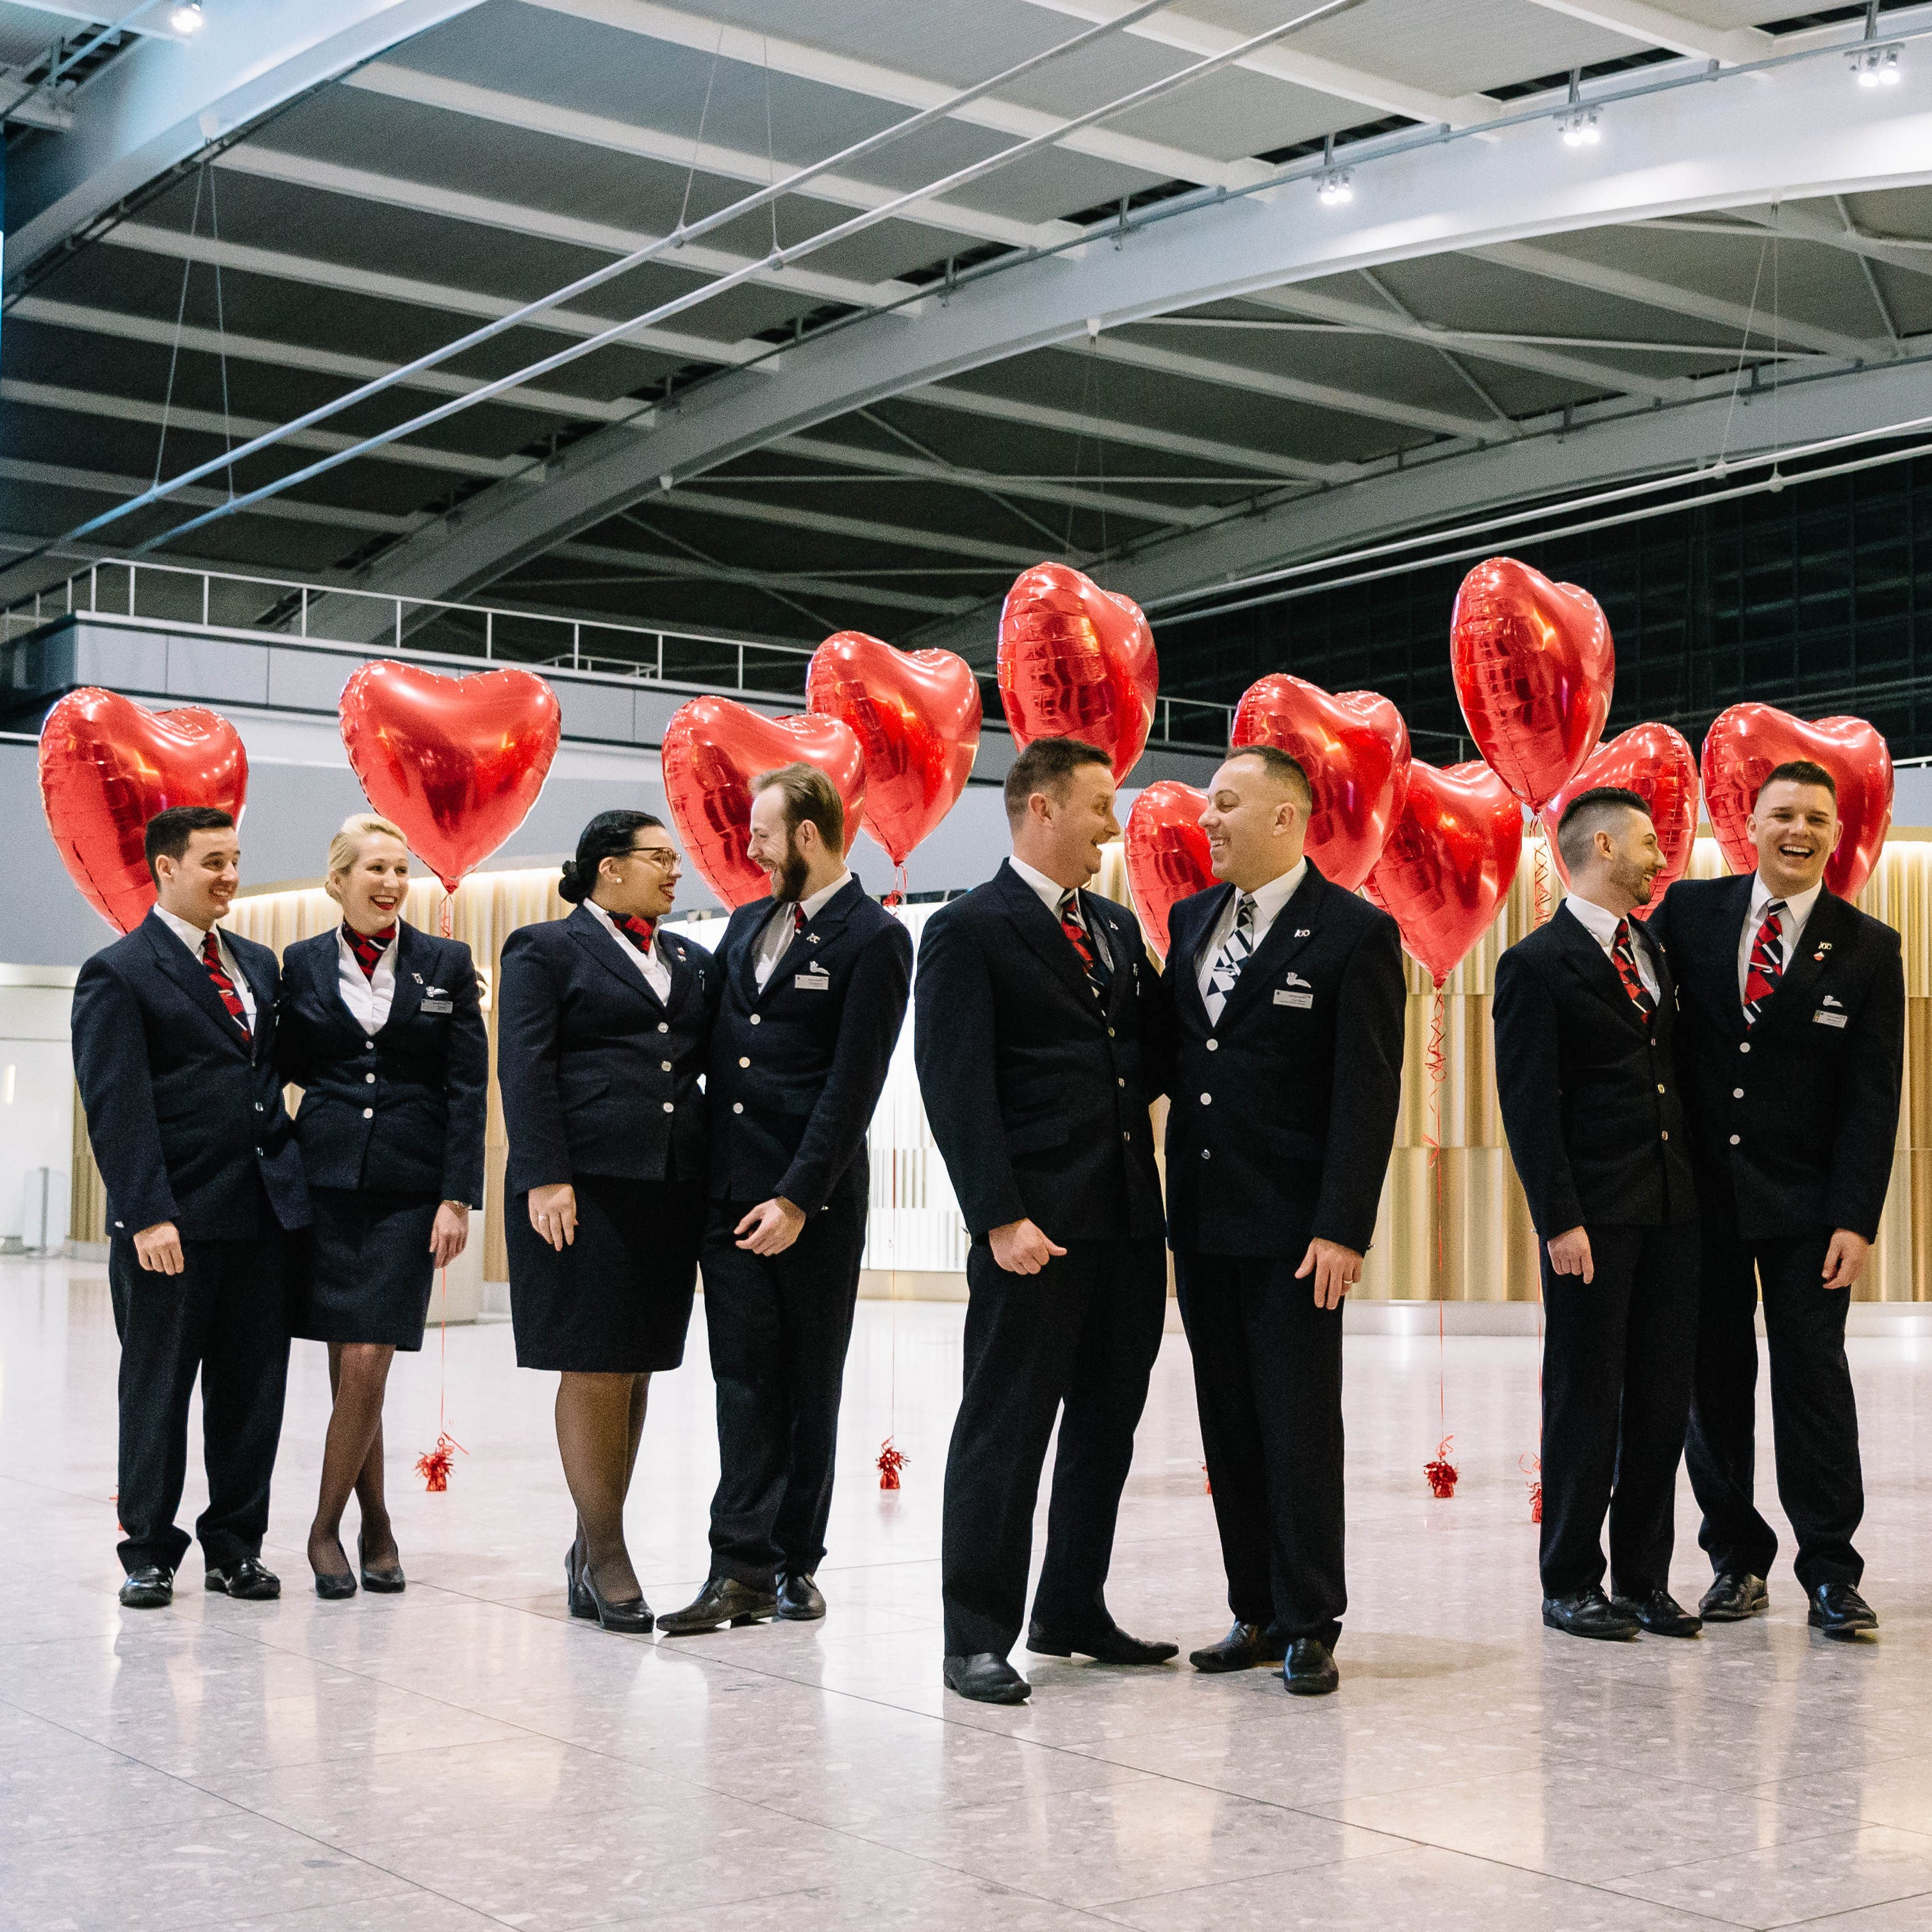 These five couples staffed British Airways' Valentine's Day flight to Buenos Aires.